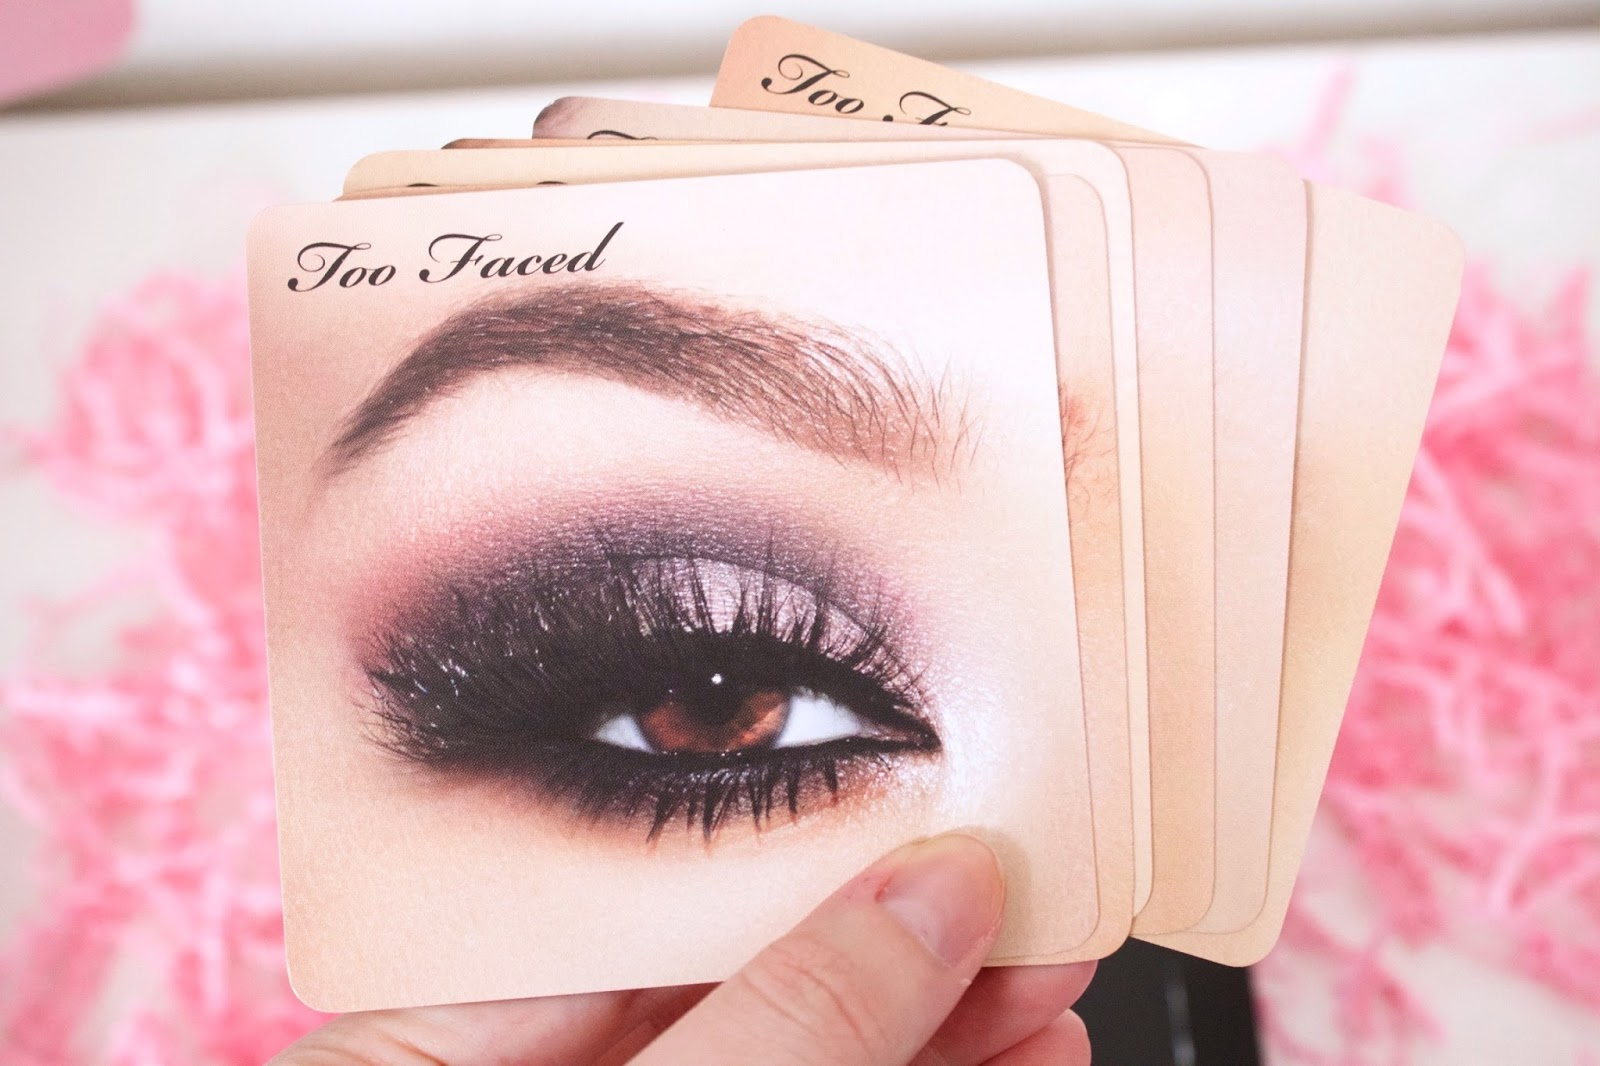 Too Faced Stardust By Vegas Nay Palette Review and Swatches